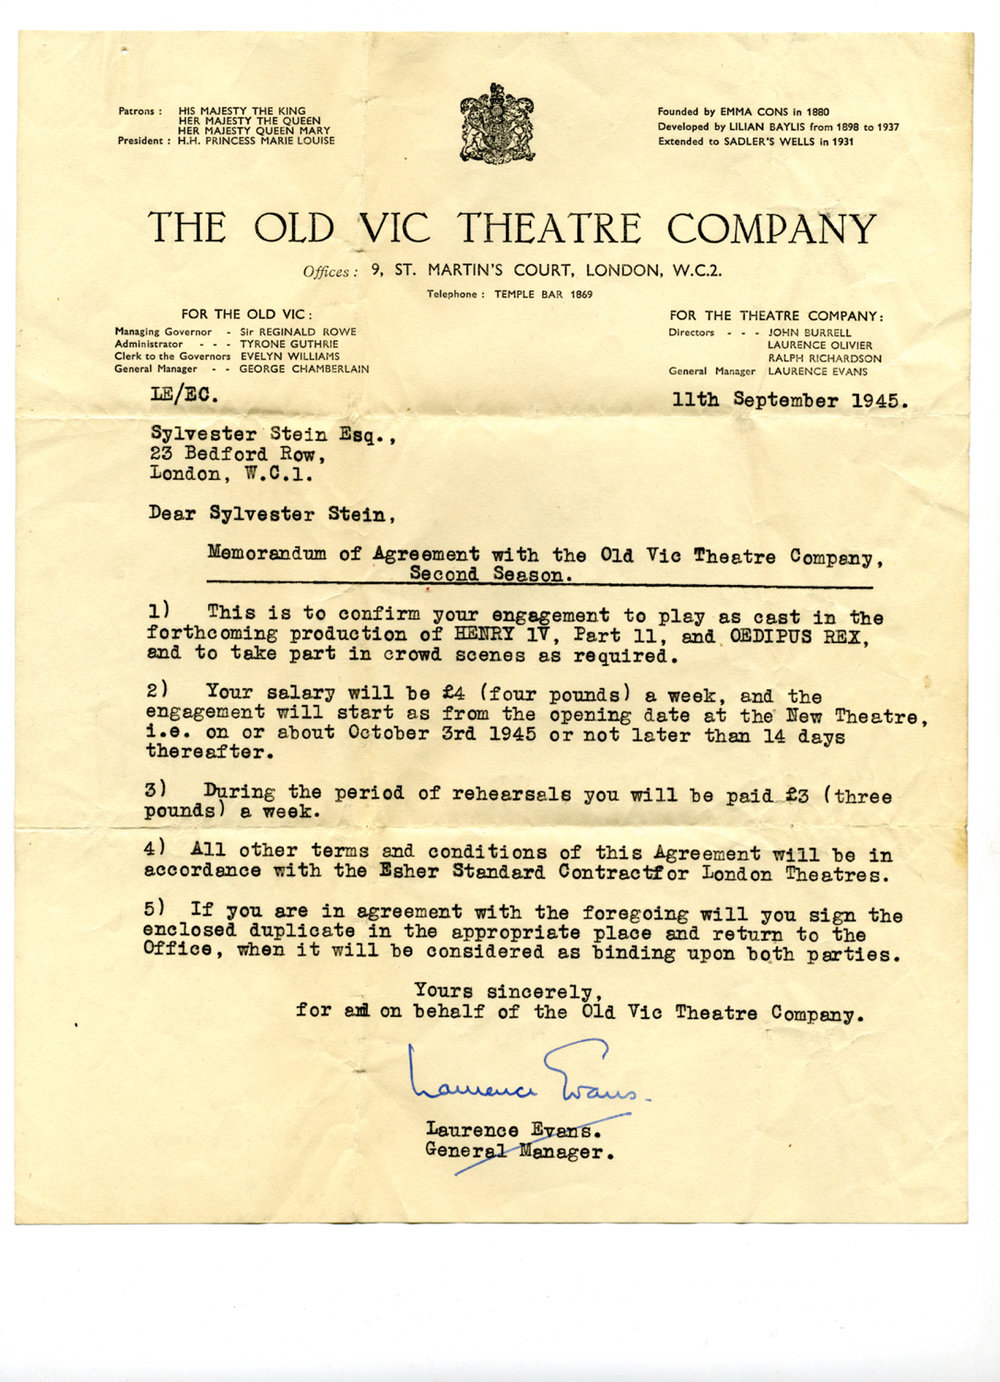 Letter offering employment at the Old Vic Theatre Company